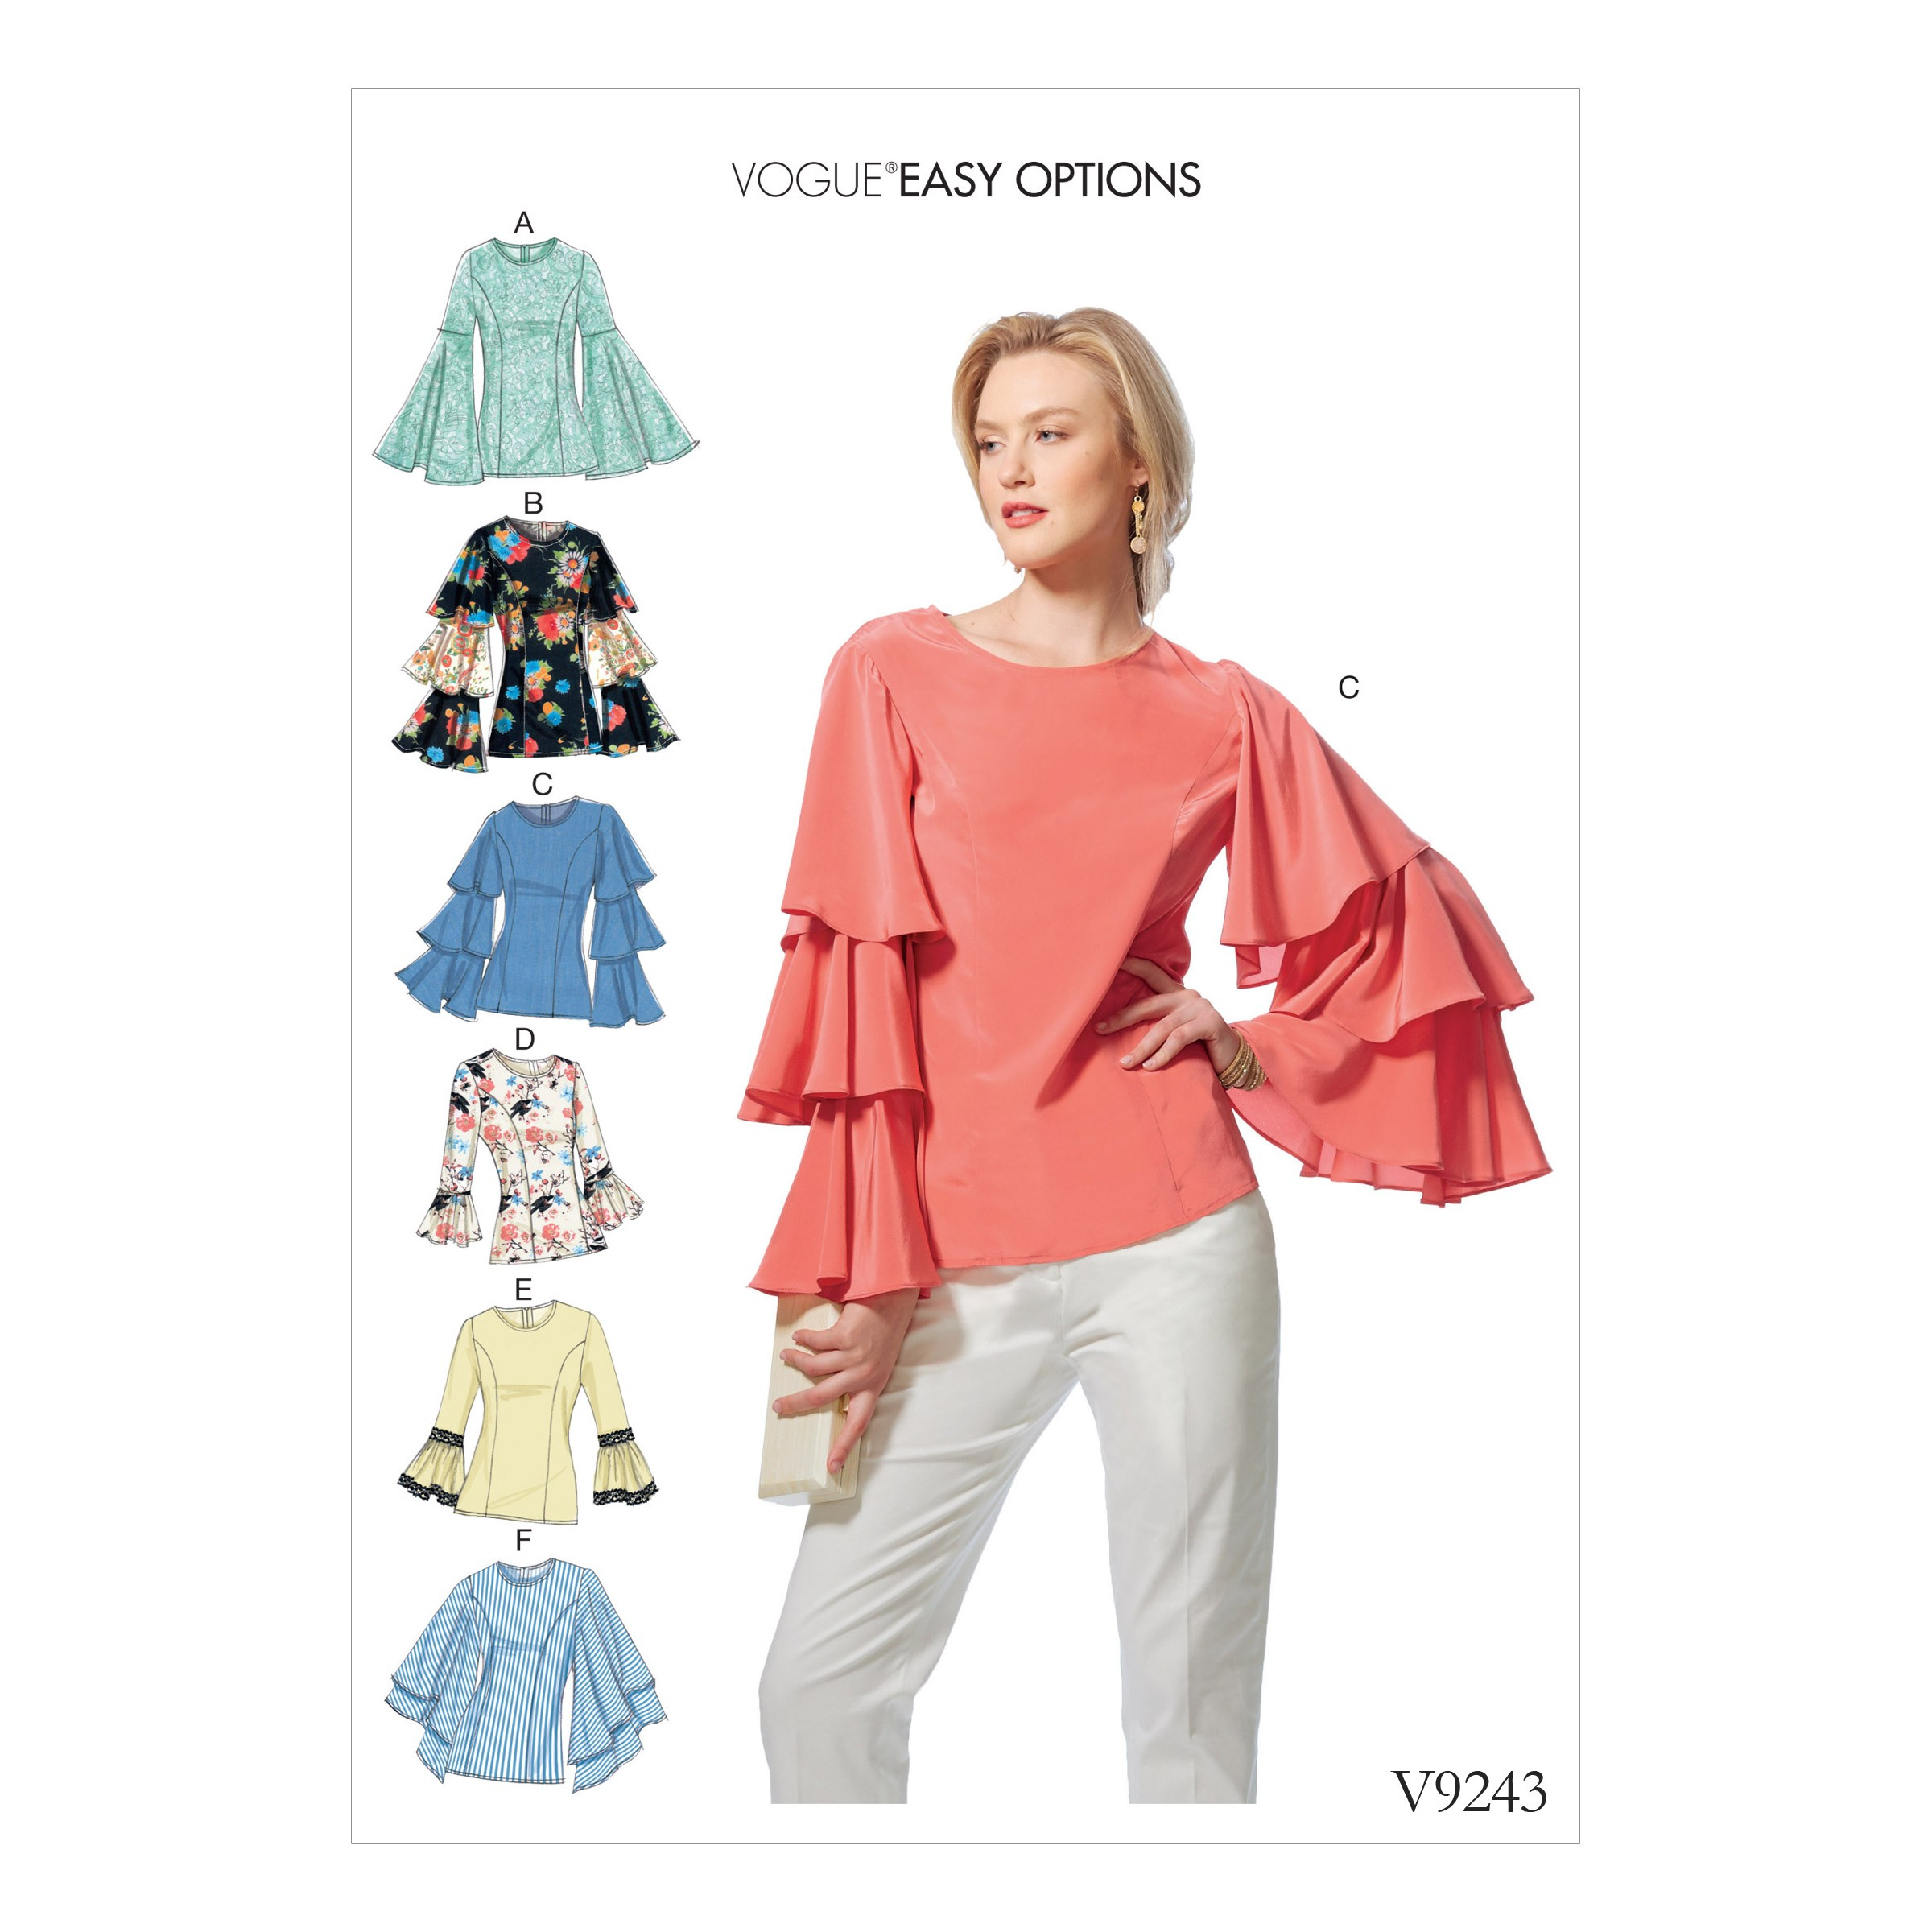 Vogue Sewing Pattern V9243 Women's Princess Seam Tops With Flared Sleeves